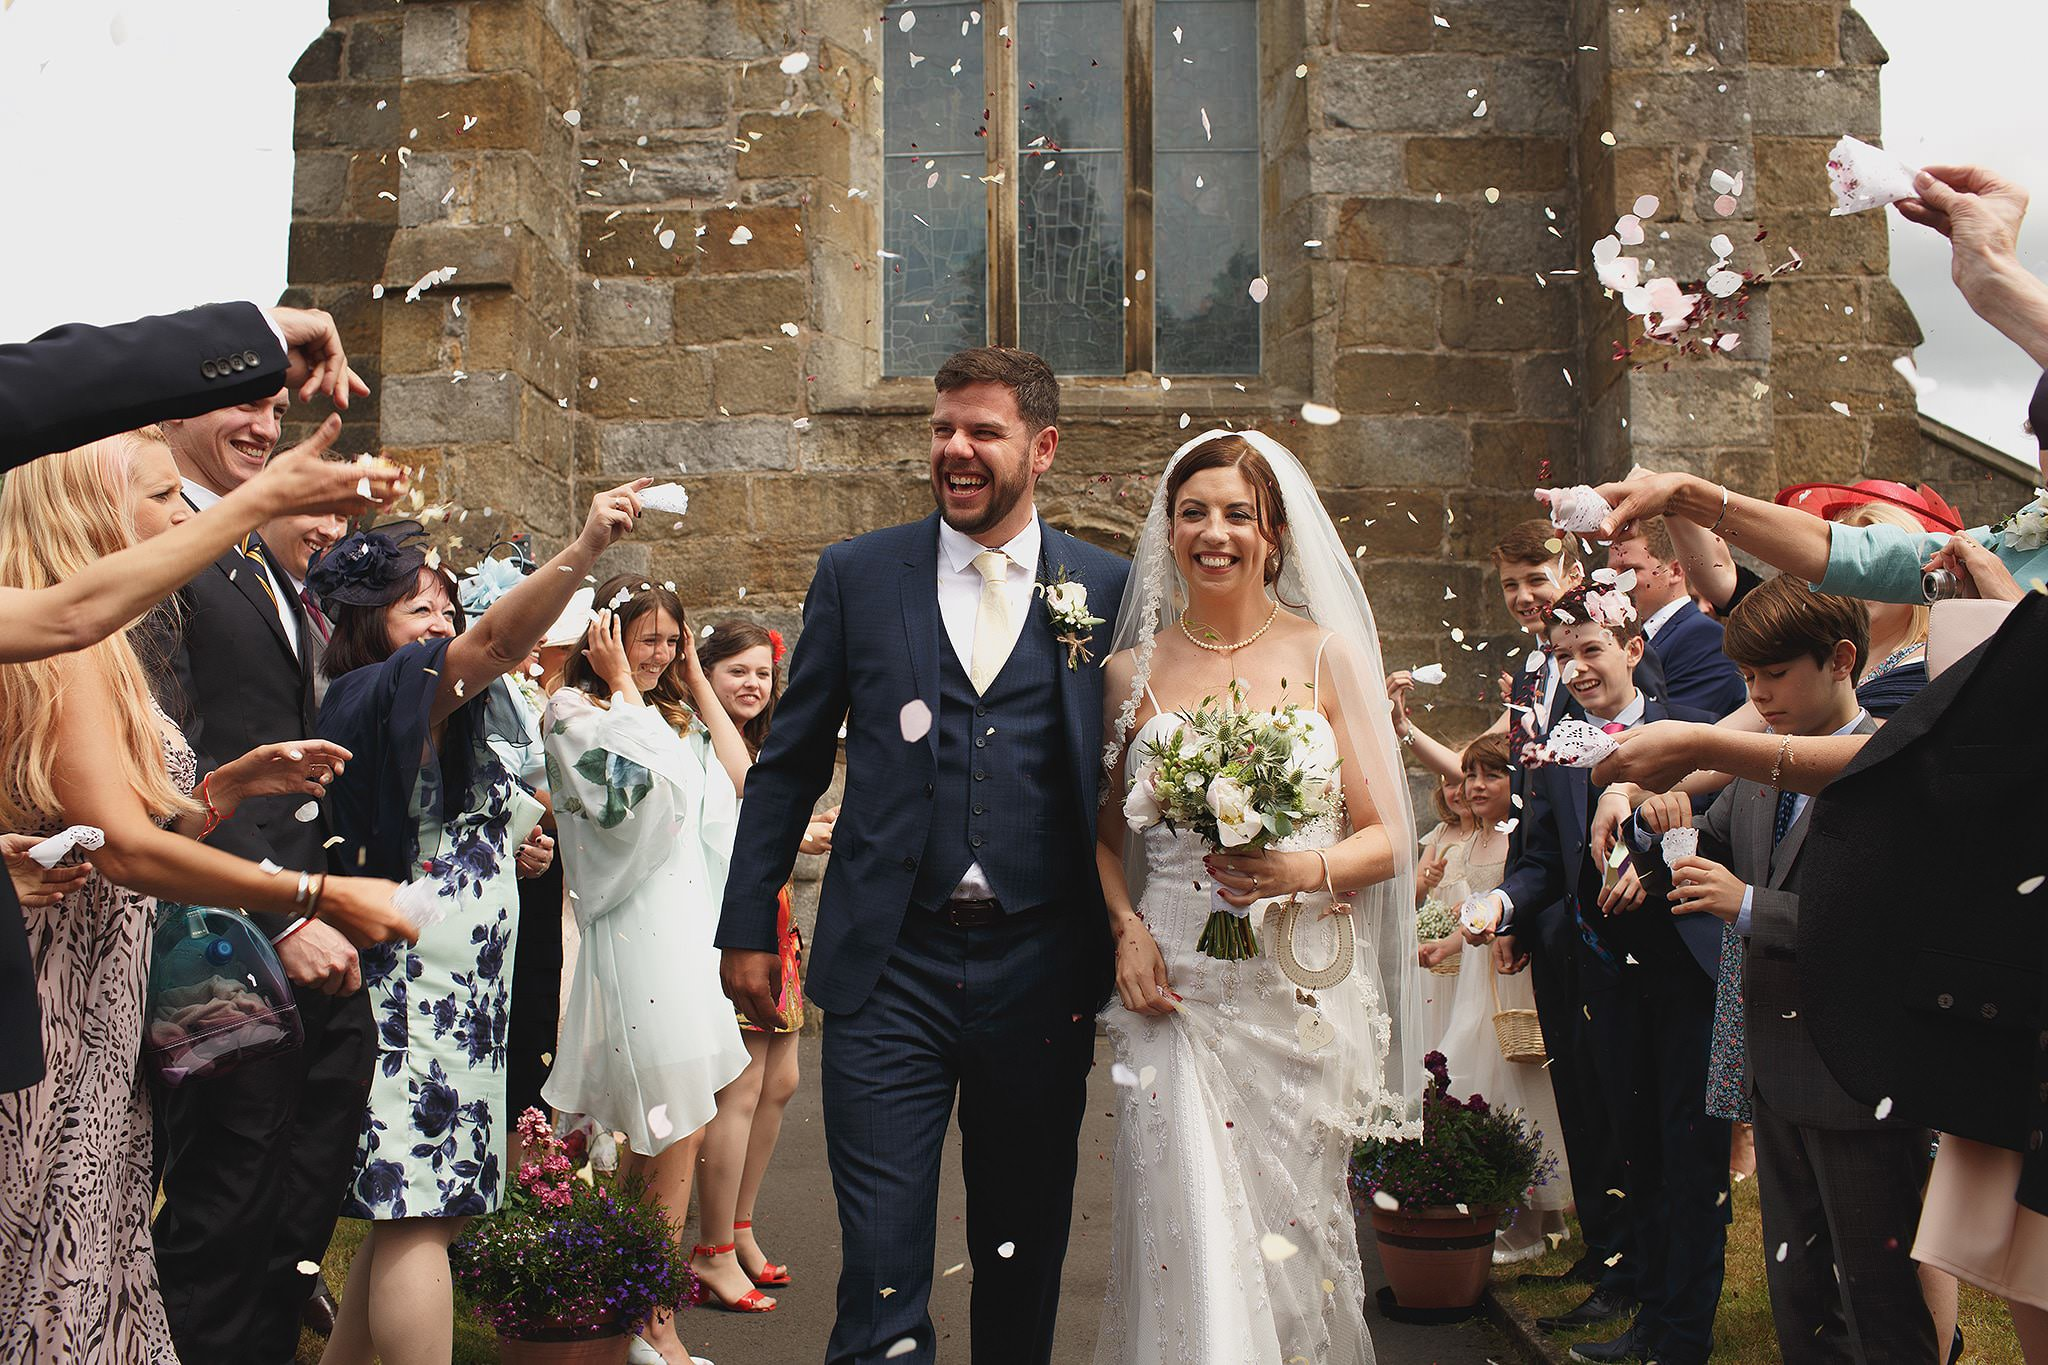 Confetti ideas by Browsholme Wedding Photographer Toni Darcy.